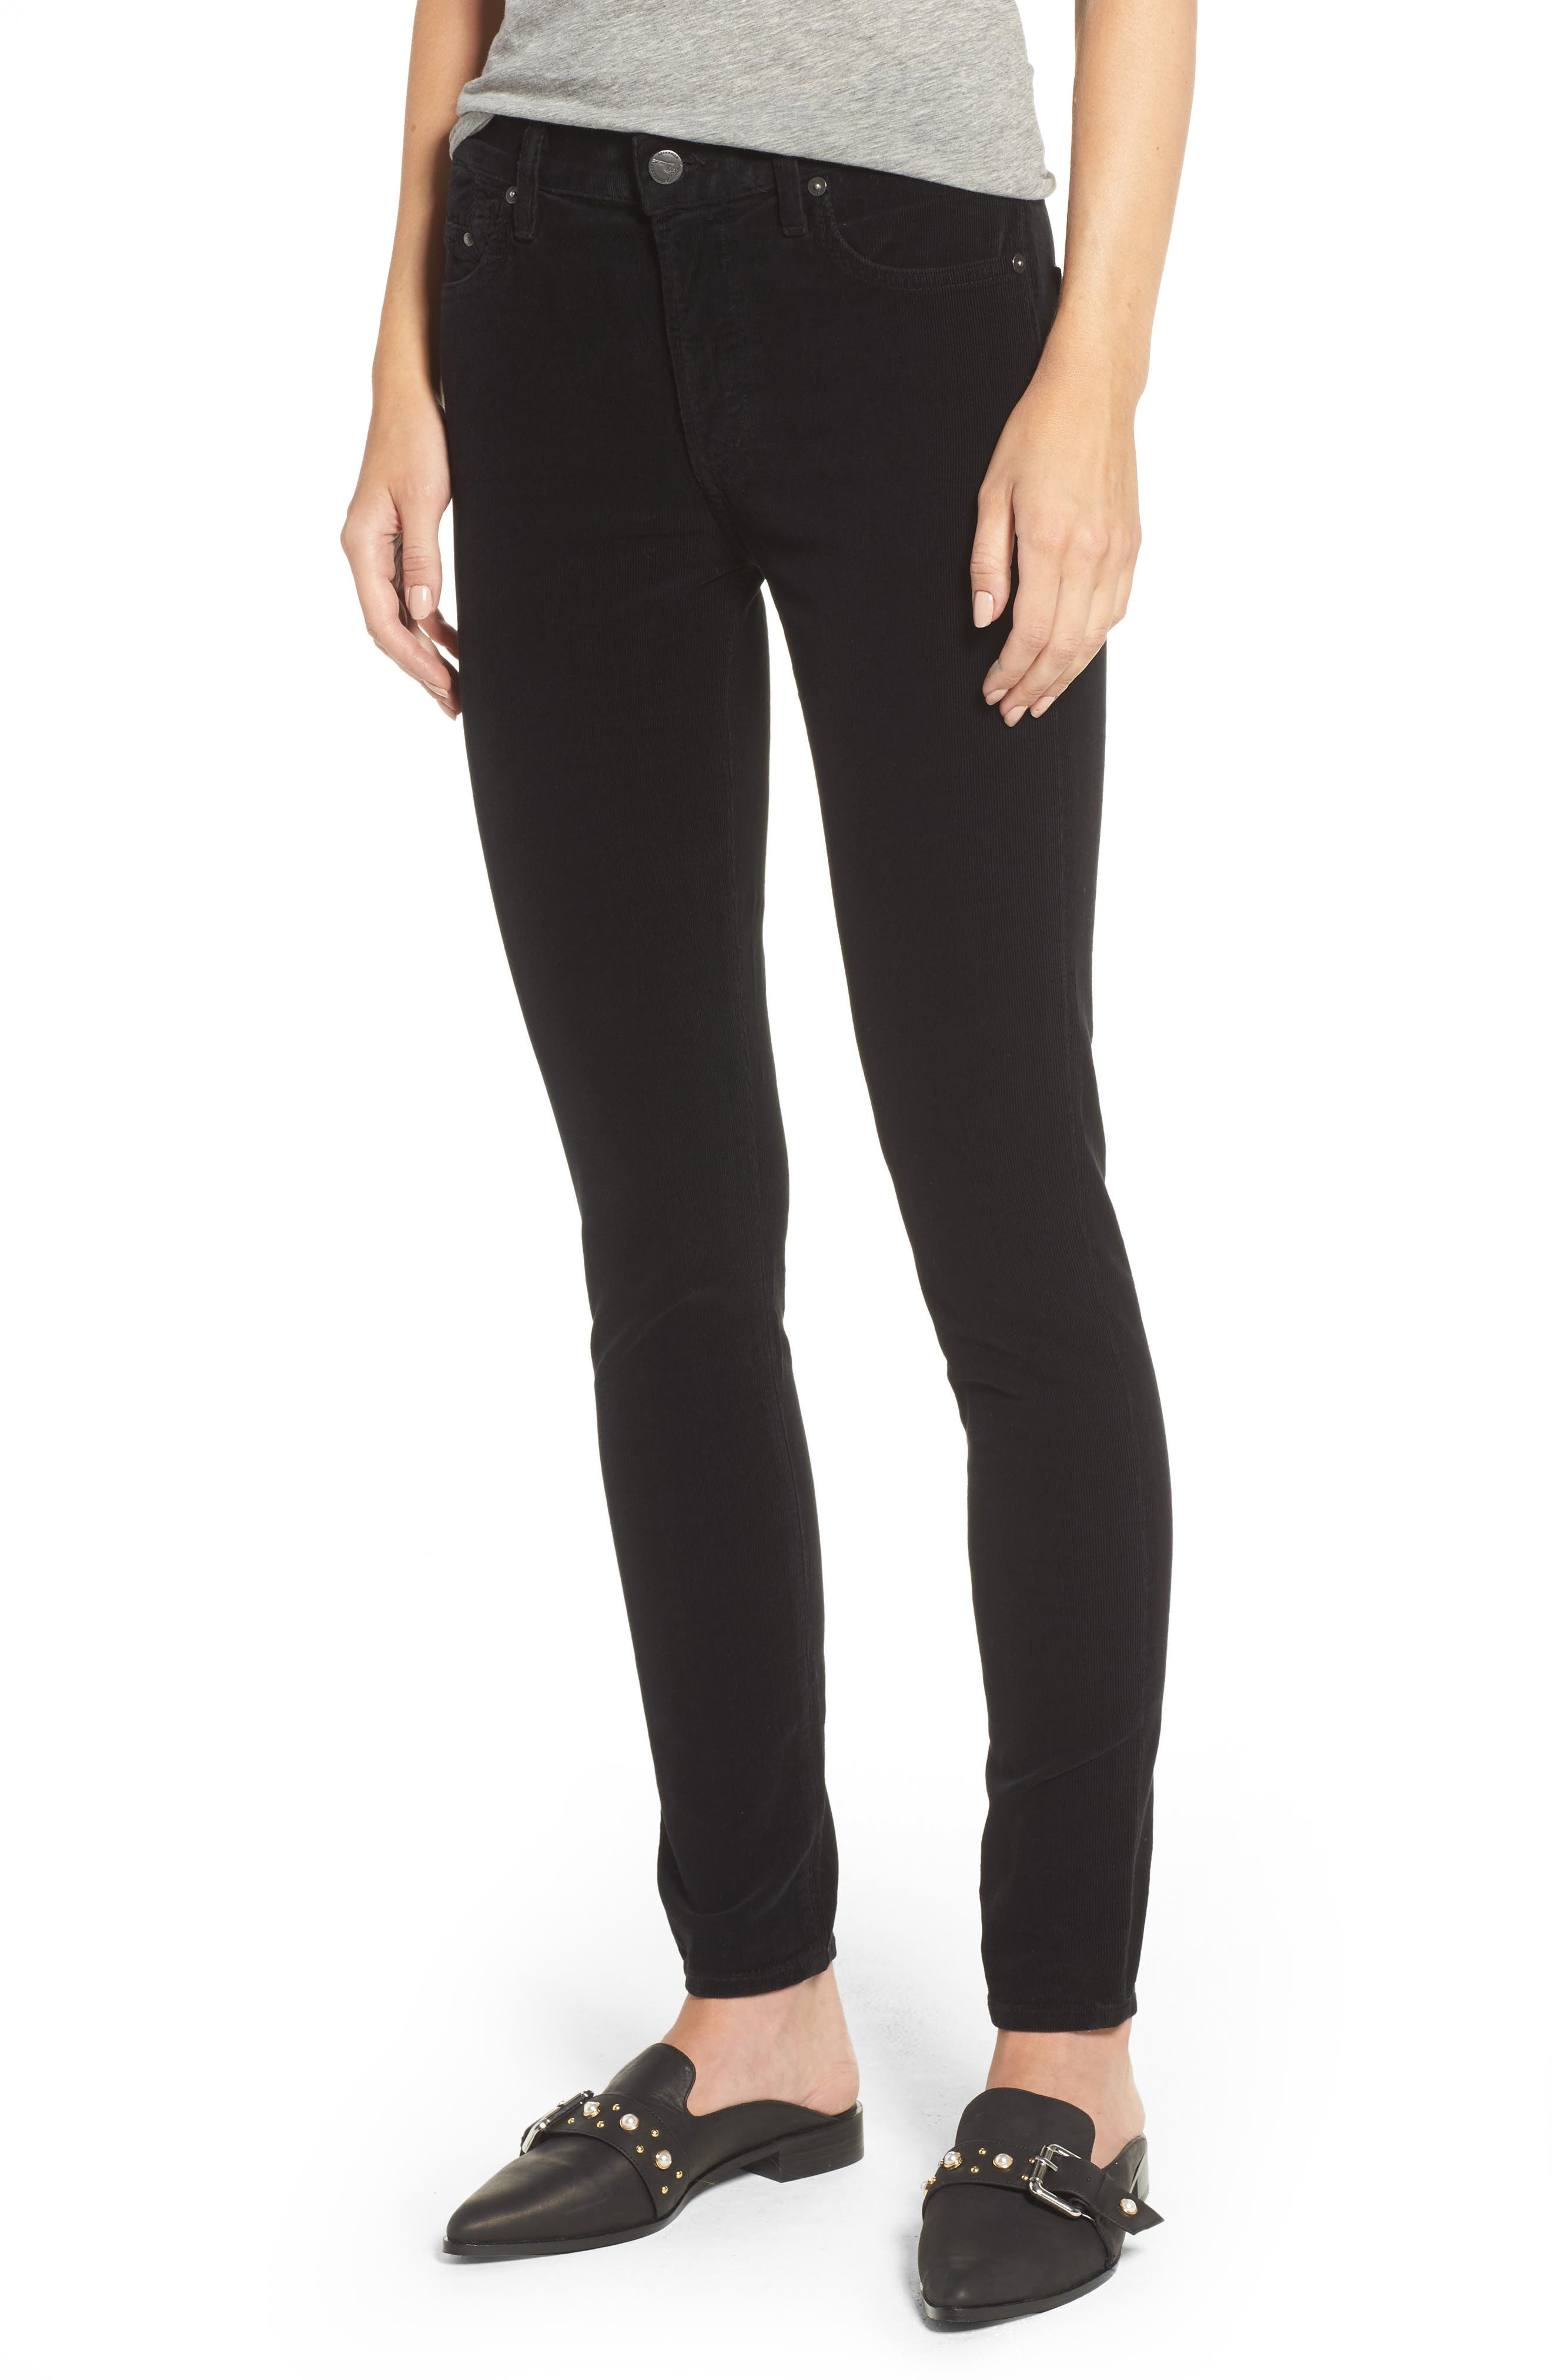 Rocket High Waist Skinny Corduroy Pants,                         Main,                         color, Black Cord